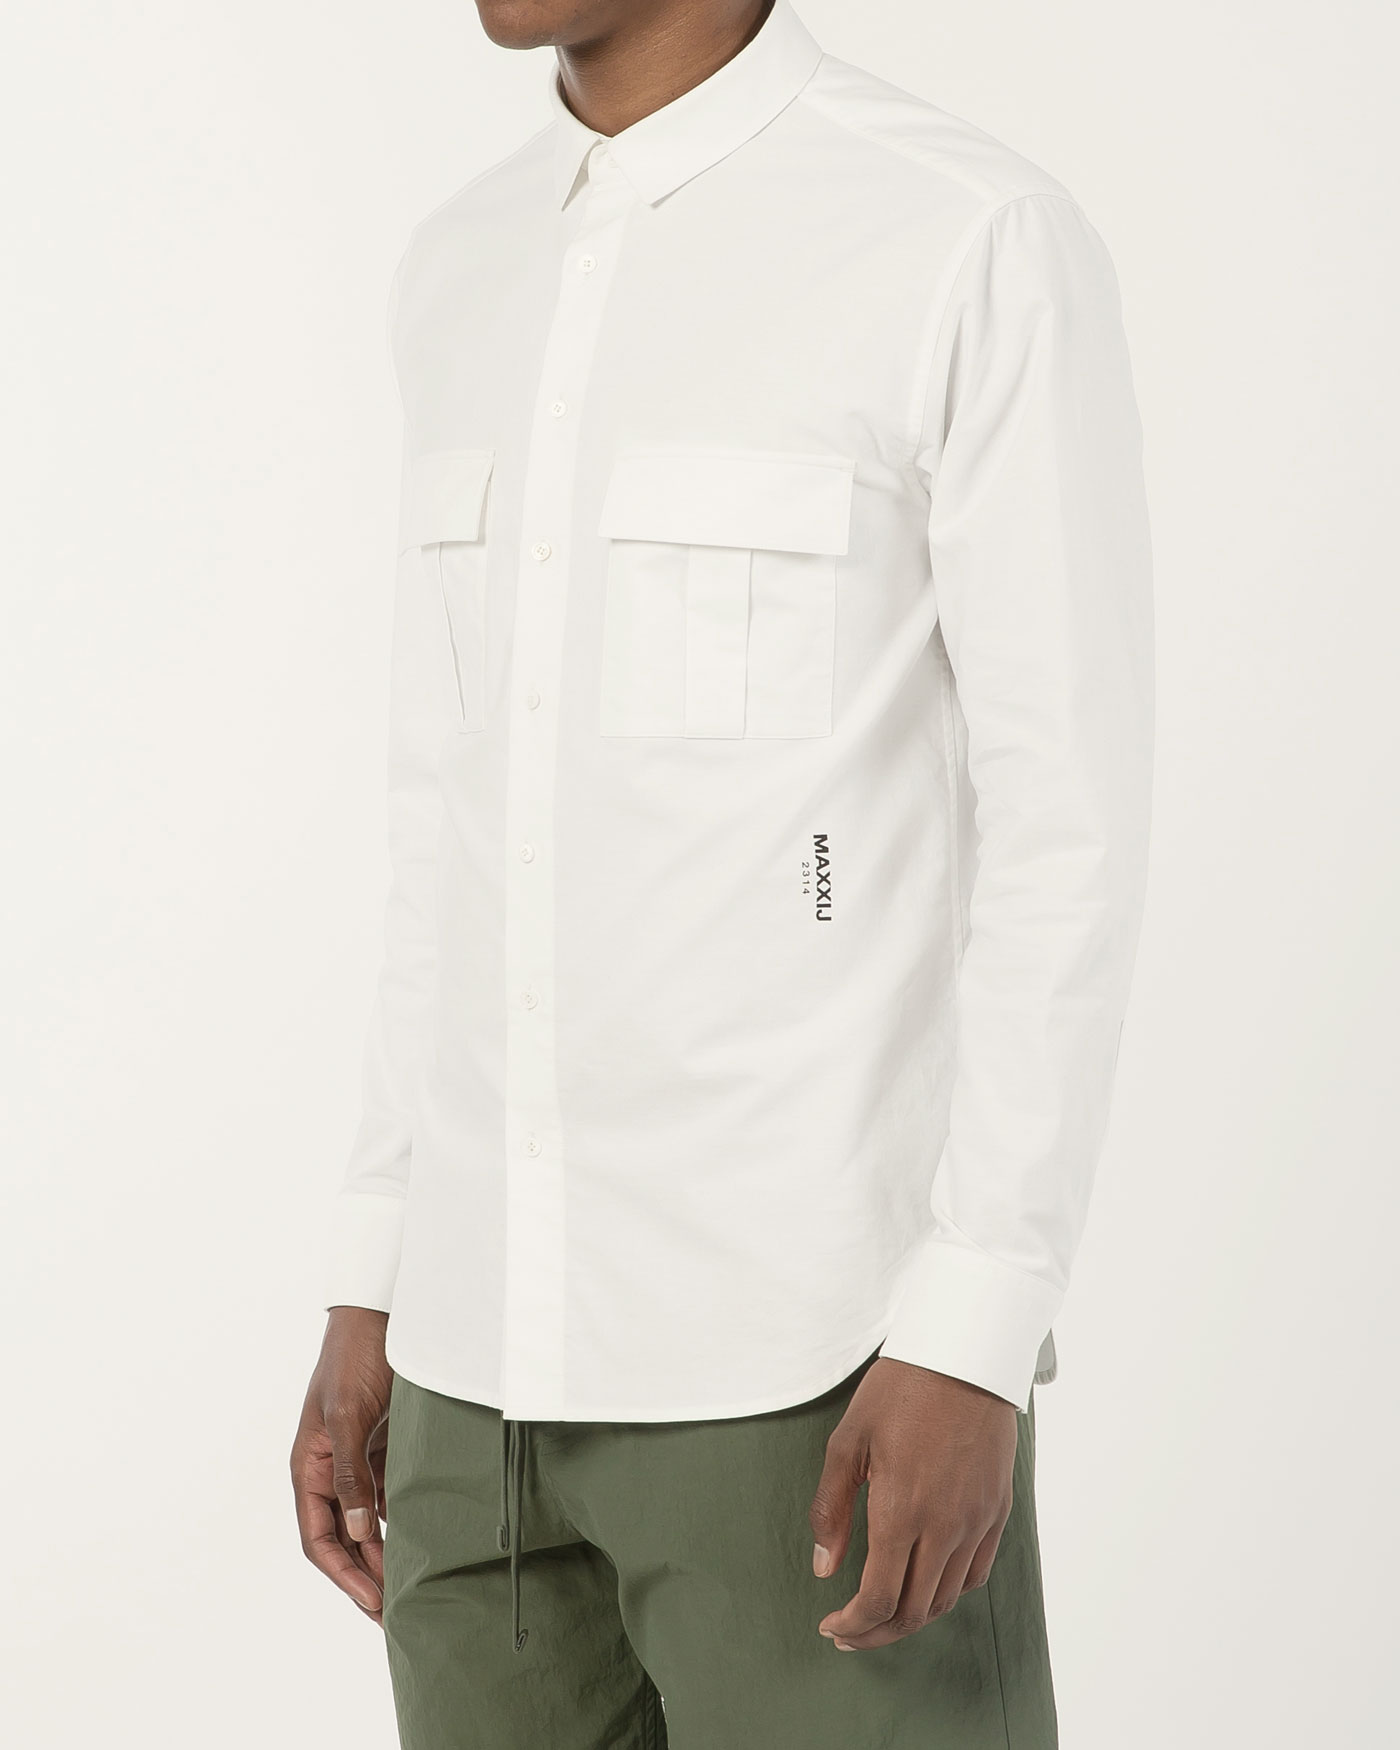 Military Button Down Oxford Shirt White